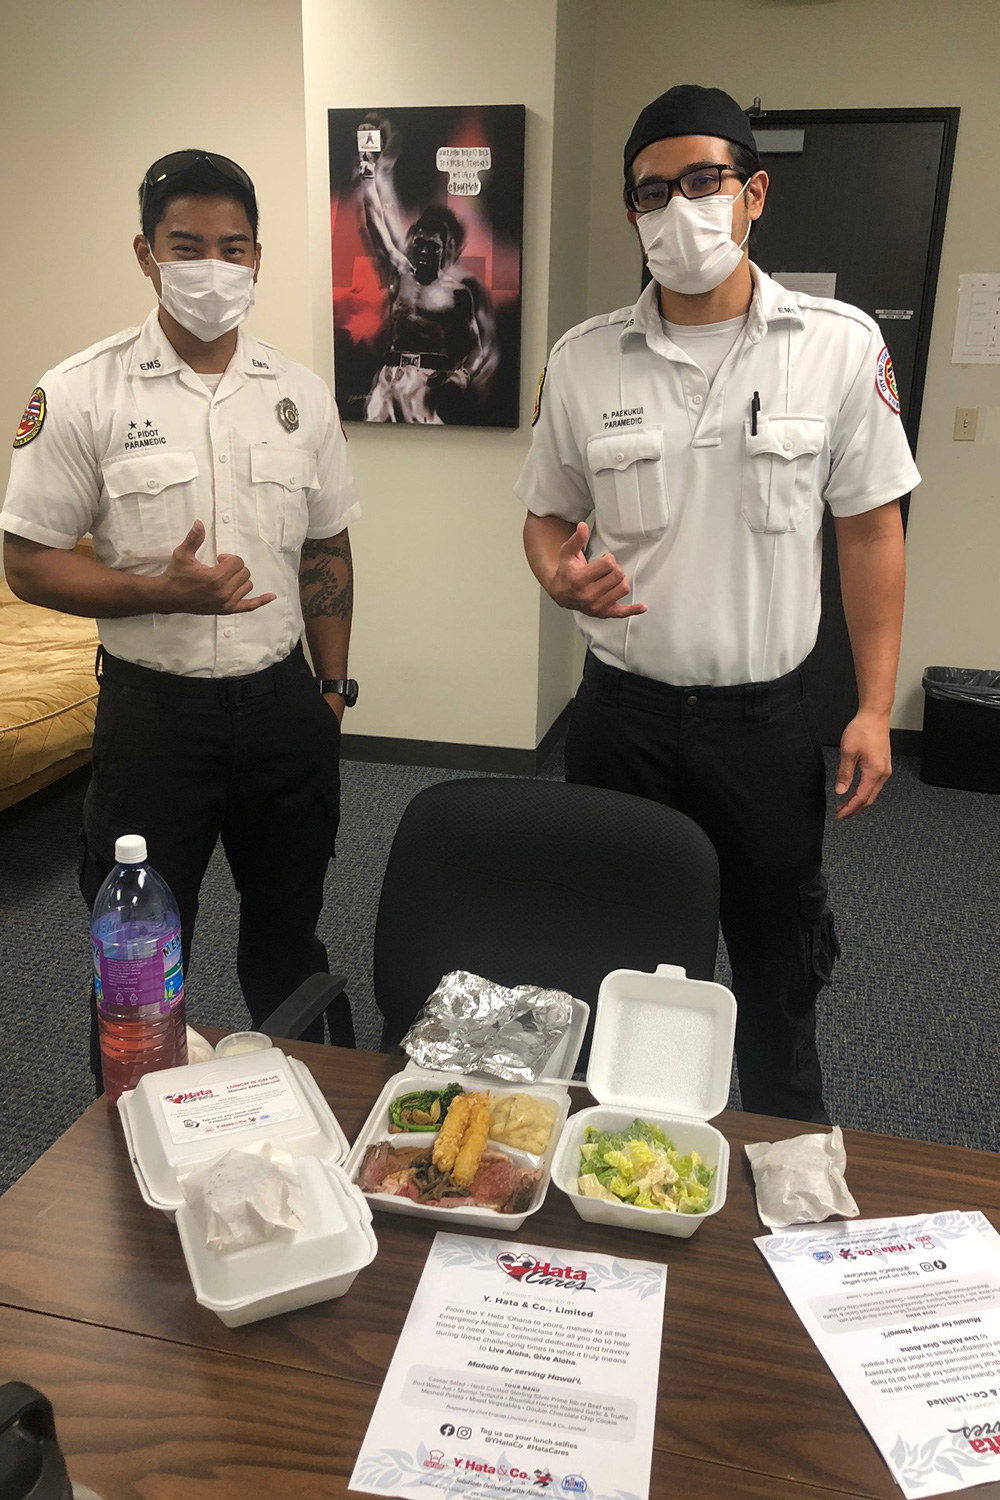 EMS technicians at the City and County of Honolulu